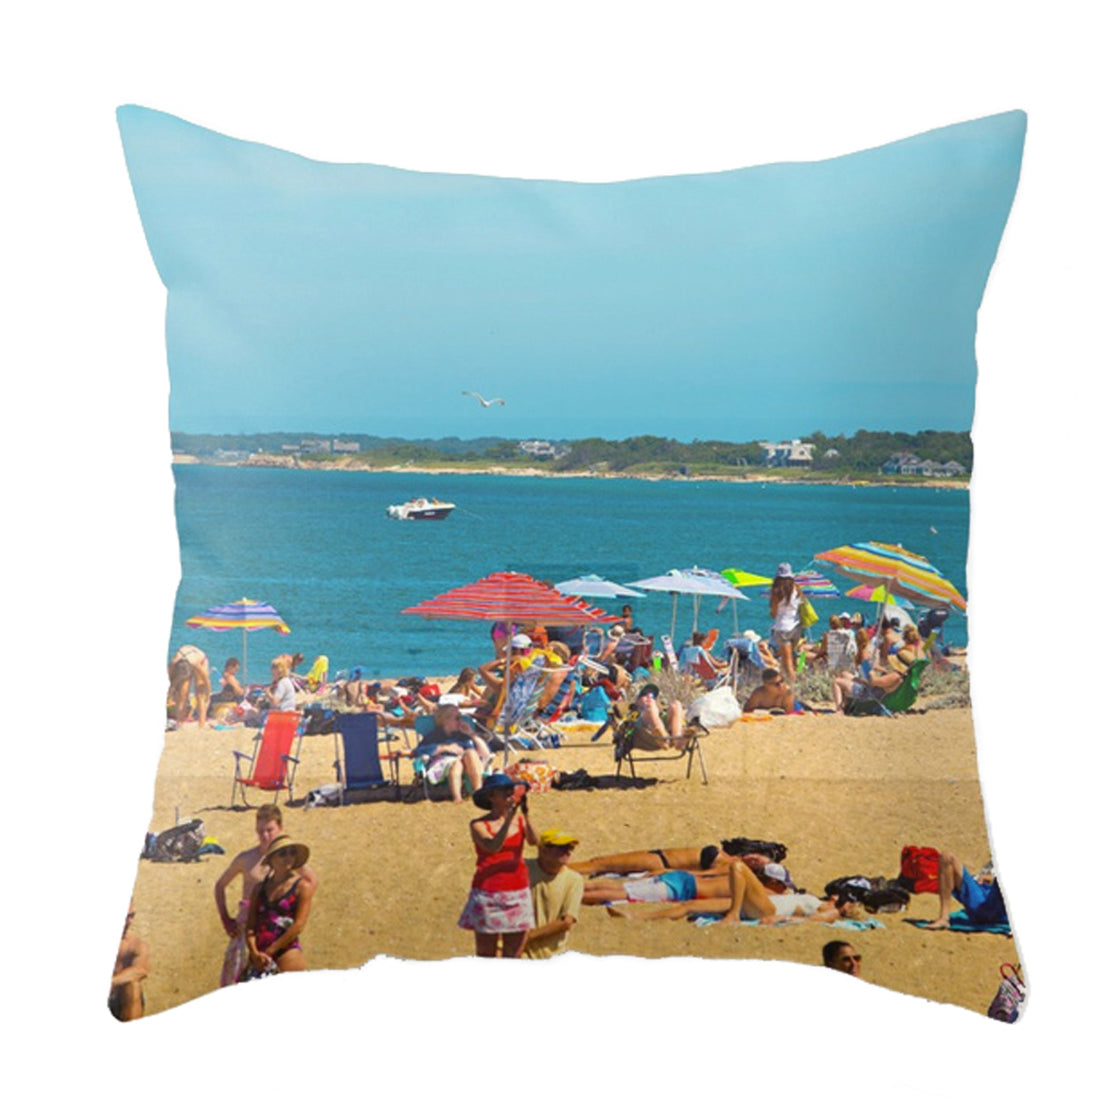 Hot Sun Crowded Beach Throw Pillow